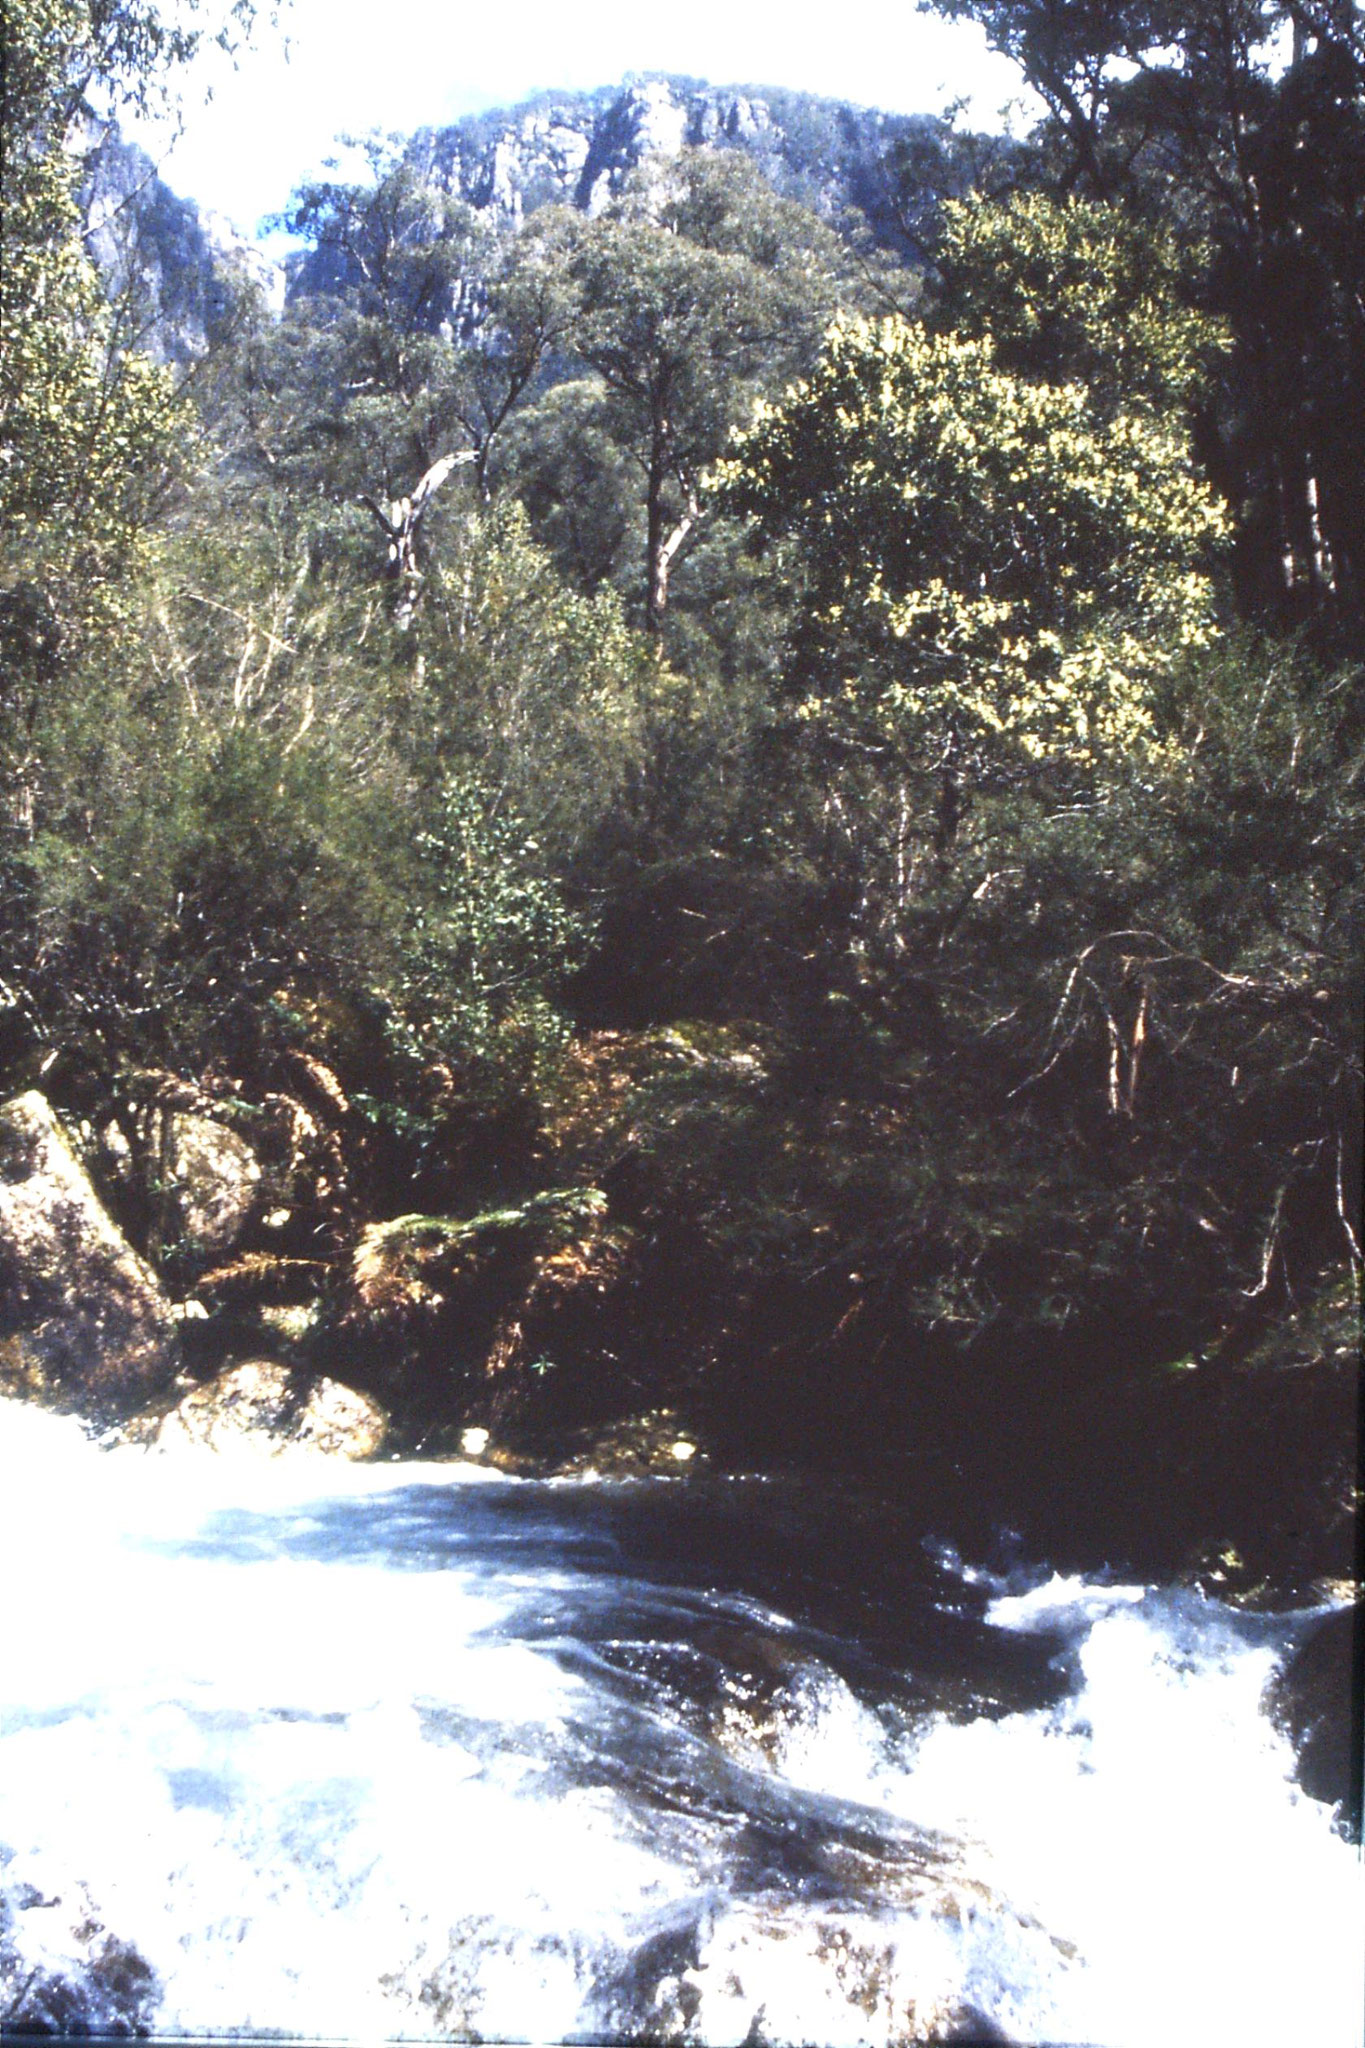 28/9/1990: 32: Mt Buffalo water falls (Crystal Brook Falls at top)